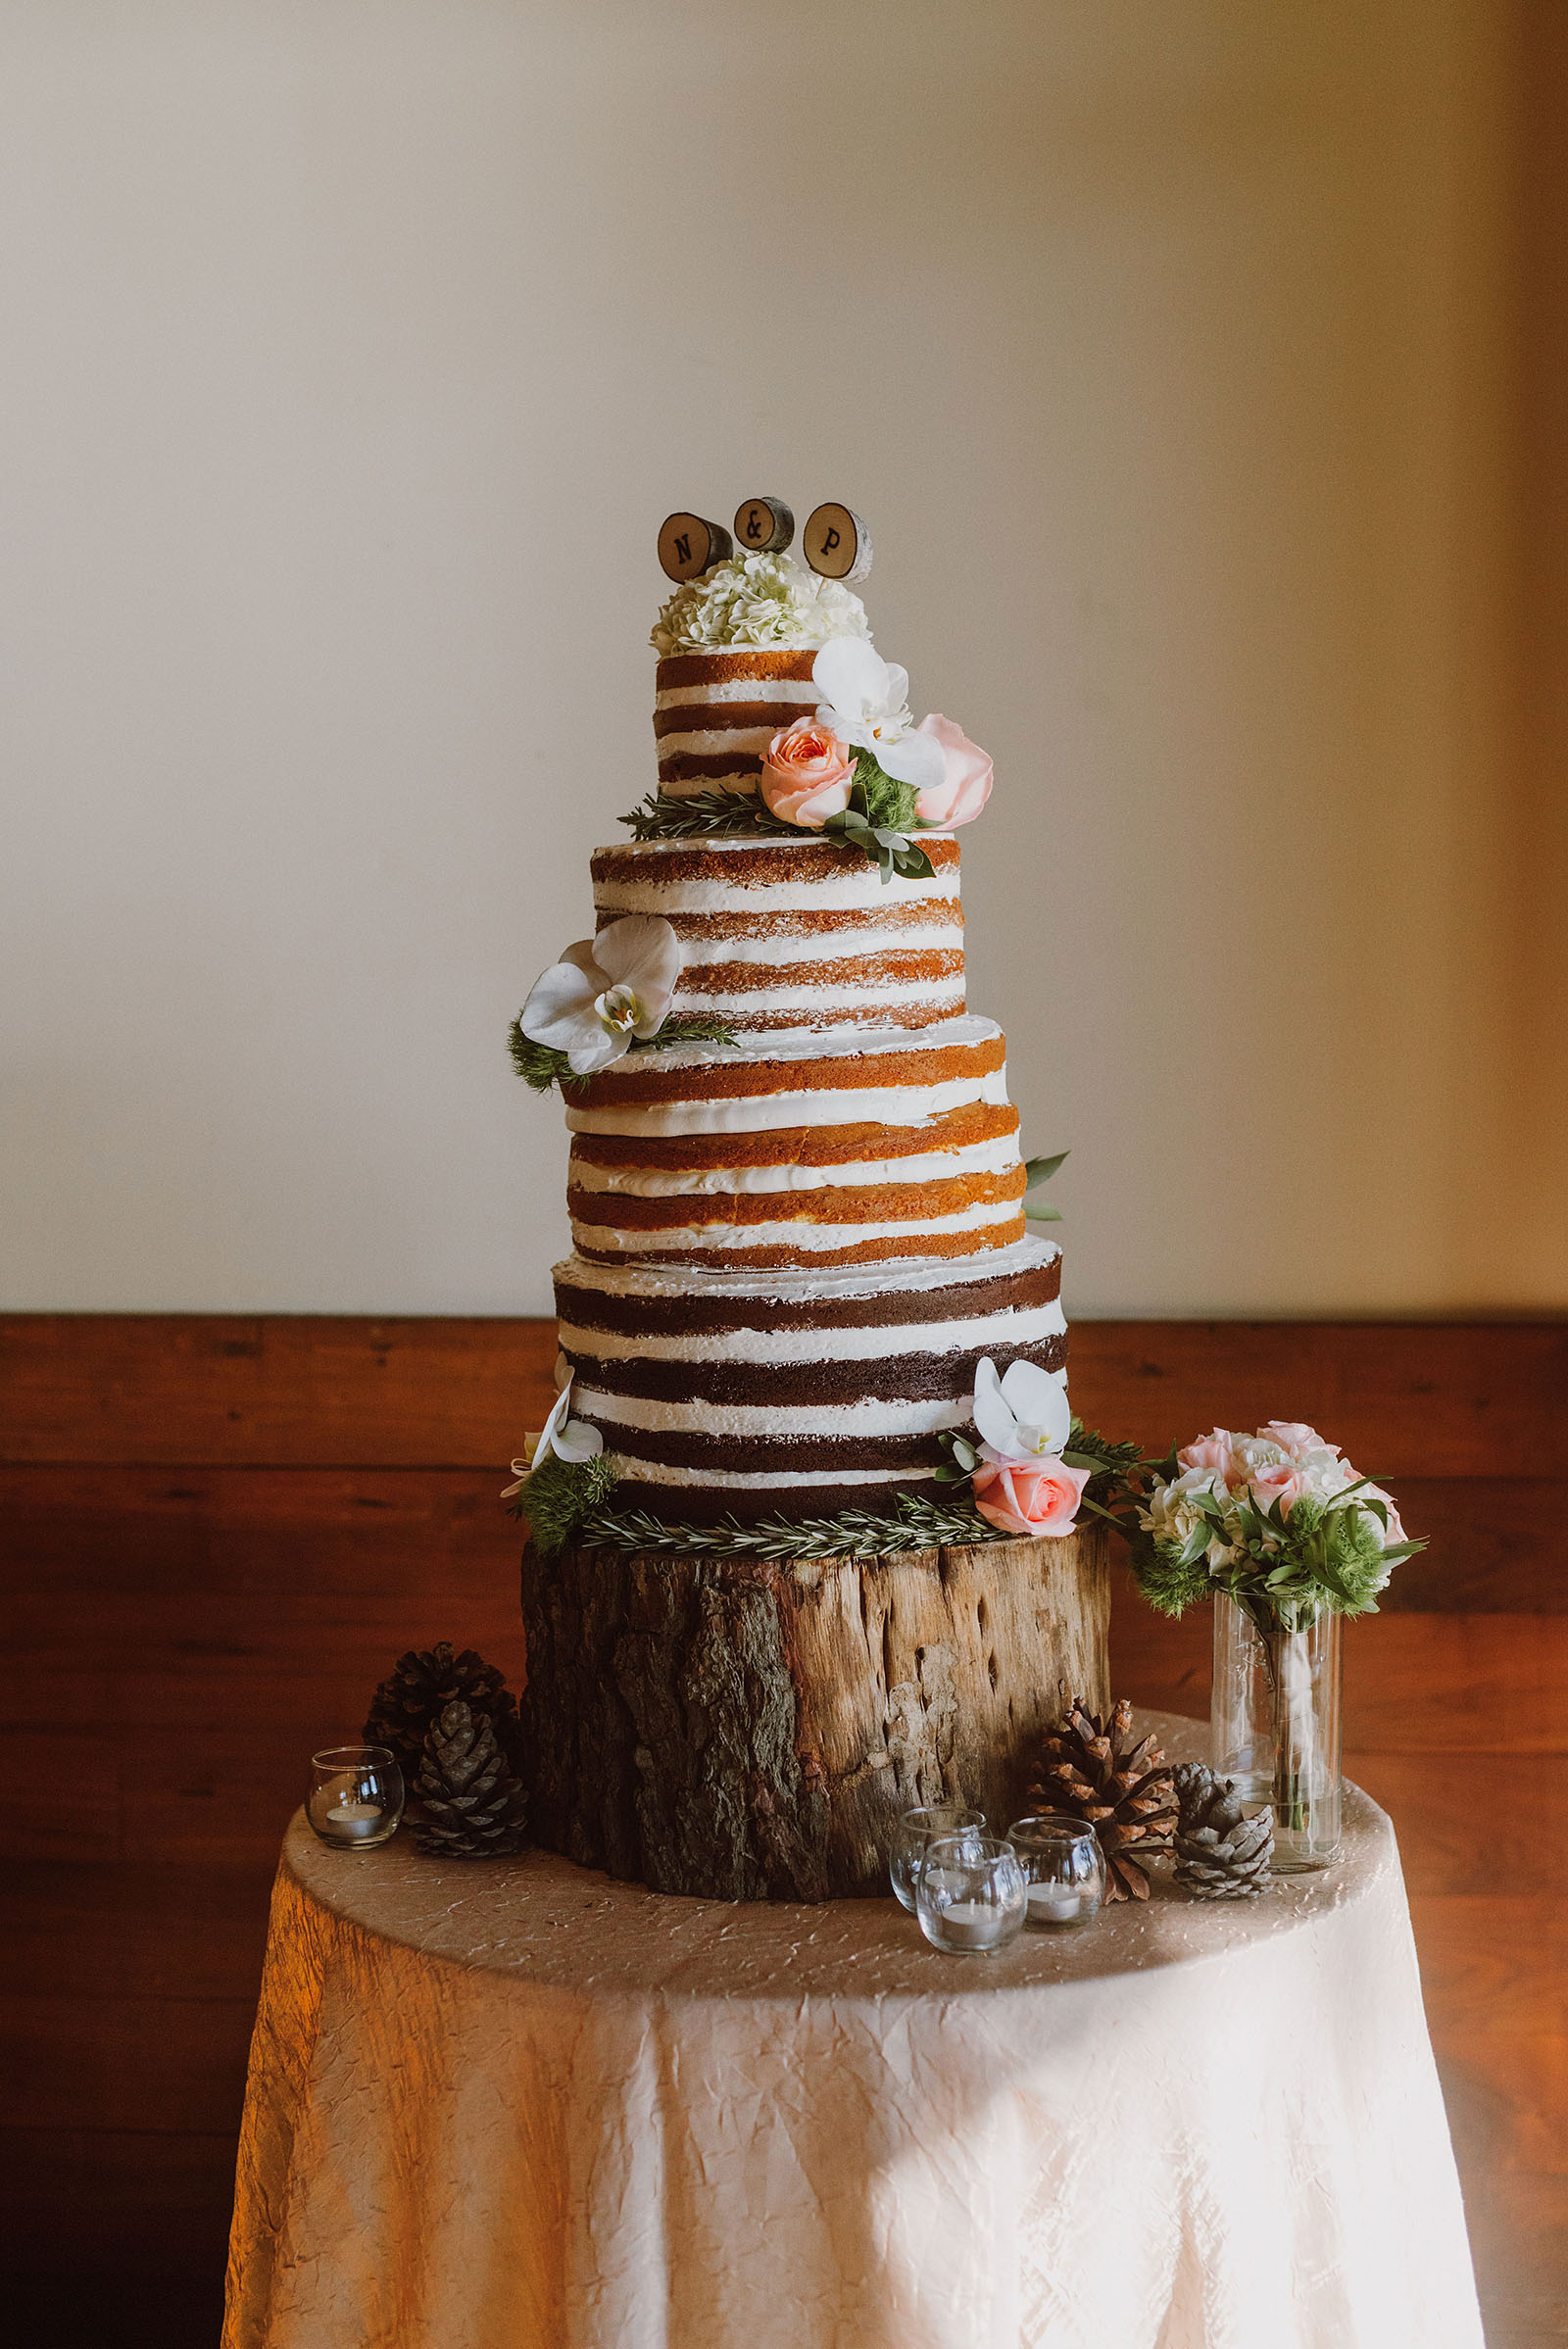 Tiered wedding cake at the Hyatt Regency Incline Village Wedding